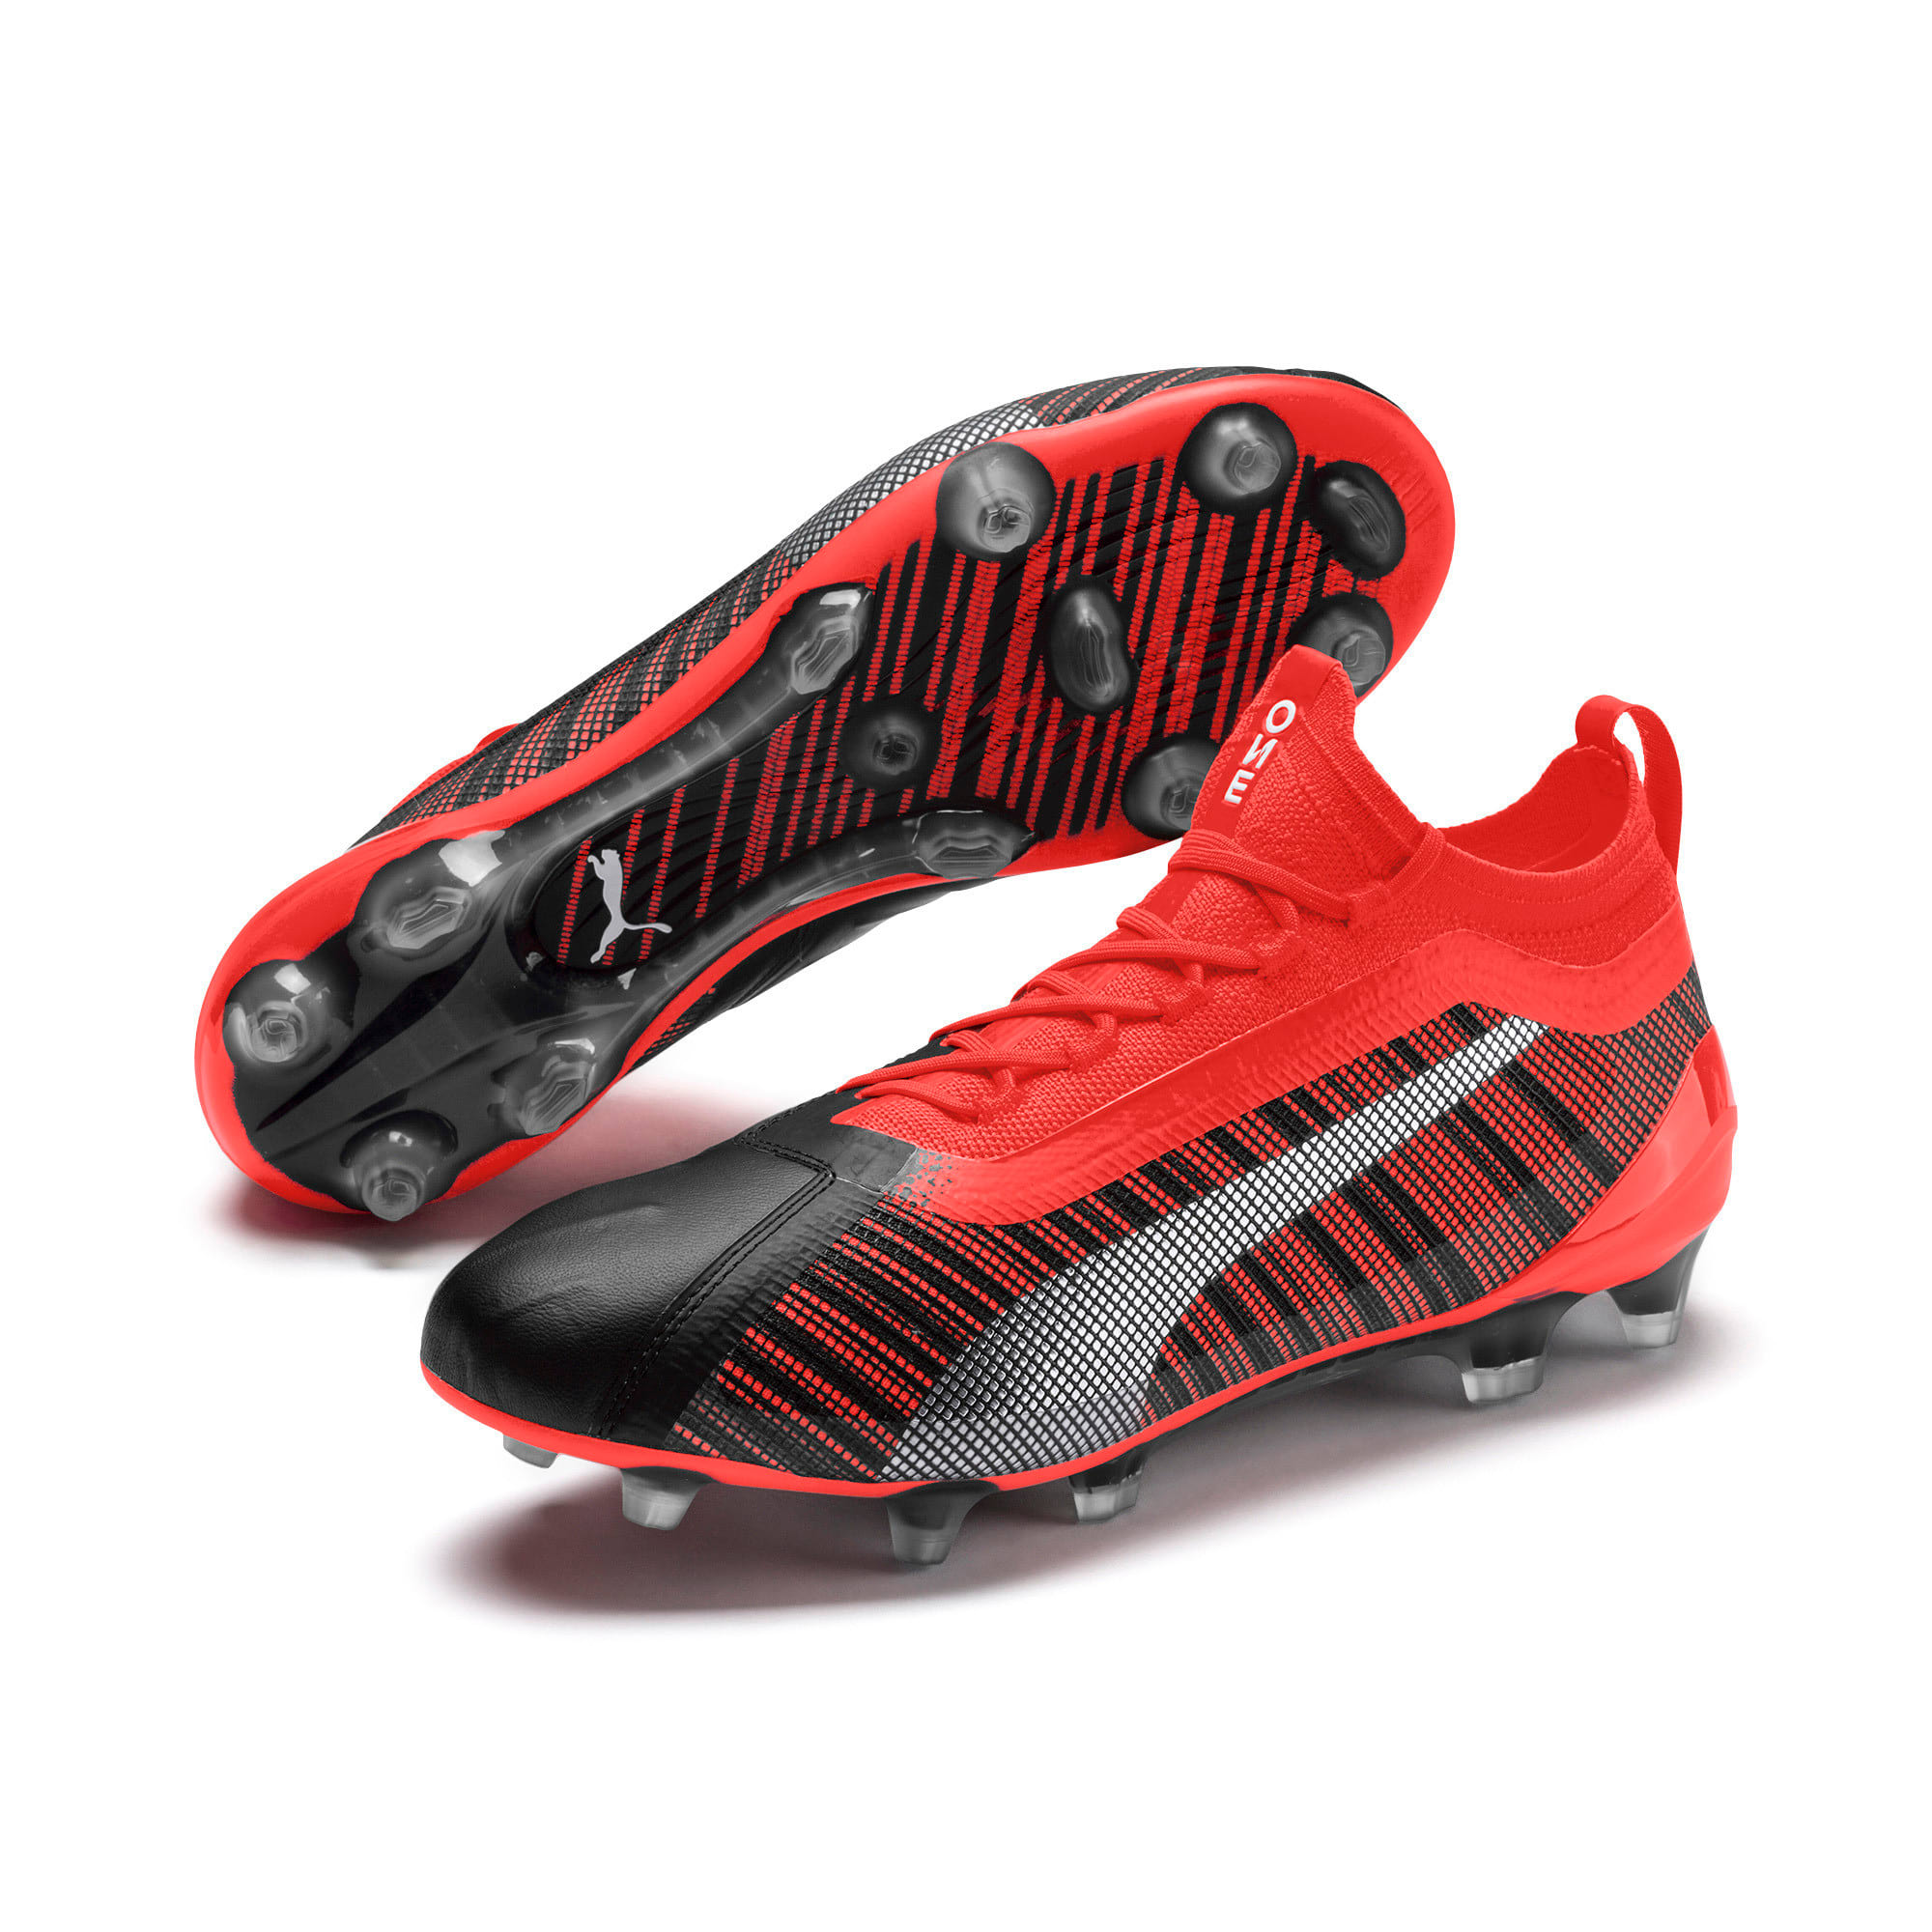 Thumbnail 3 of PUMA ONE 5.1 evoKNIT FG/AG Herren Fußballschuhe, Black-Nrgy Red-Aged Silver, medium